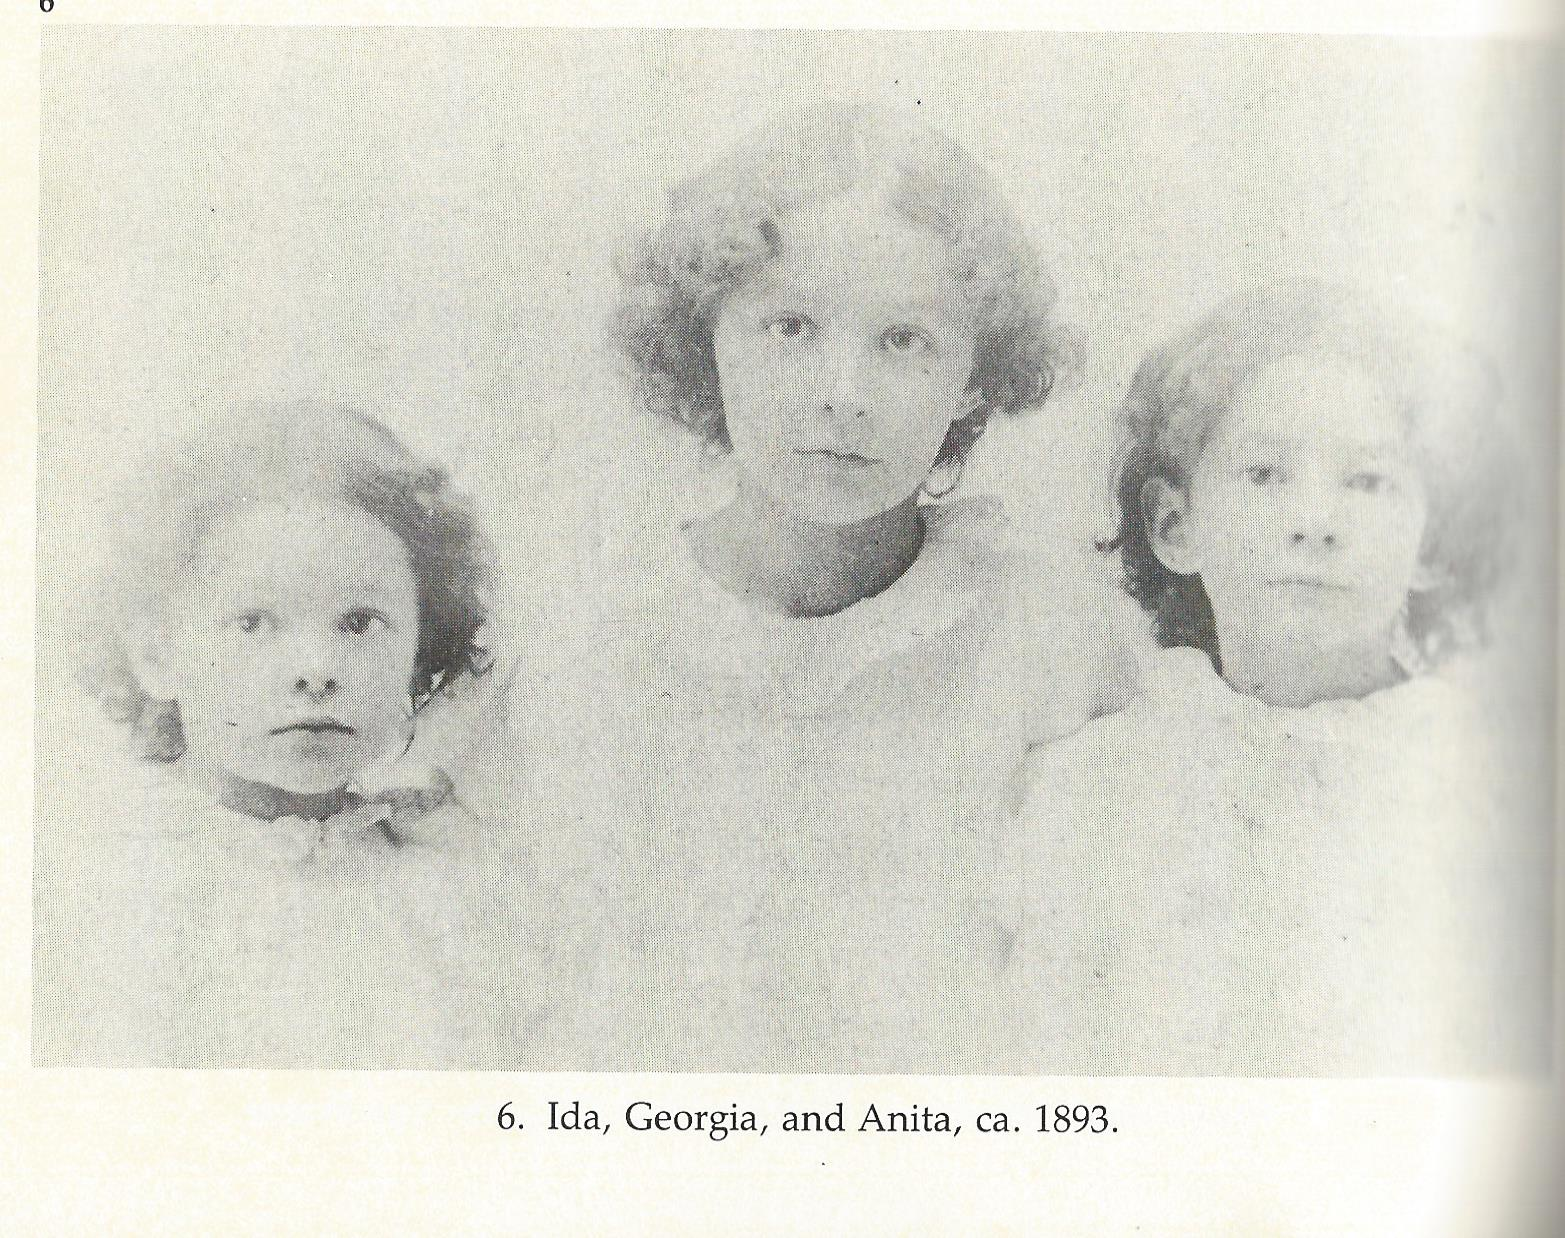 Sisters Ida, Georgia, and Anita O'Keeffe in 1893. A Sun Prairie resident at the time, Georgia would be around 6 years old when this picture was taken.